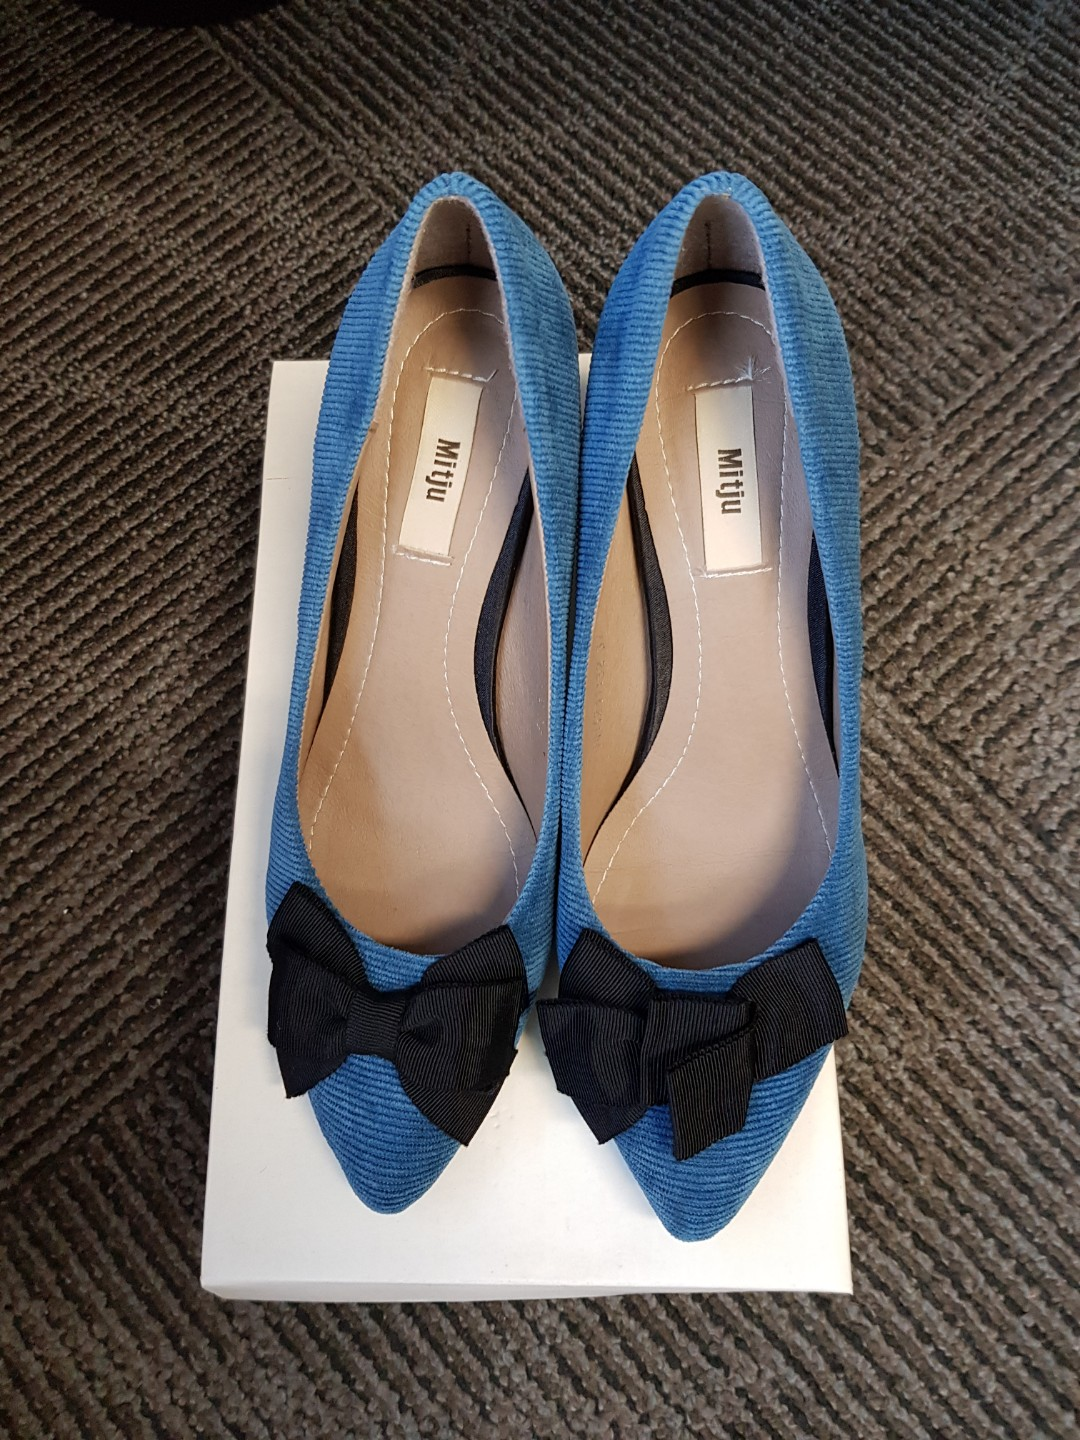 8ef58b30bb Blue Velvet Shoes with Black Bow